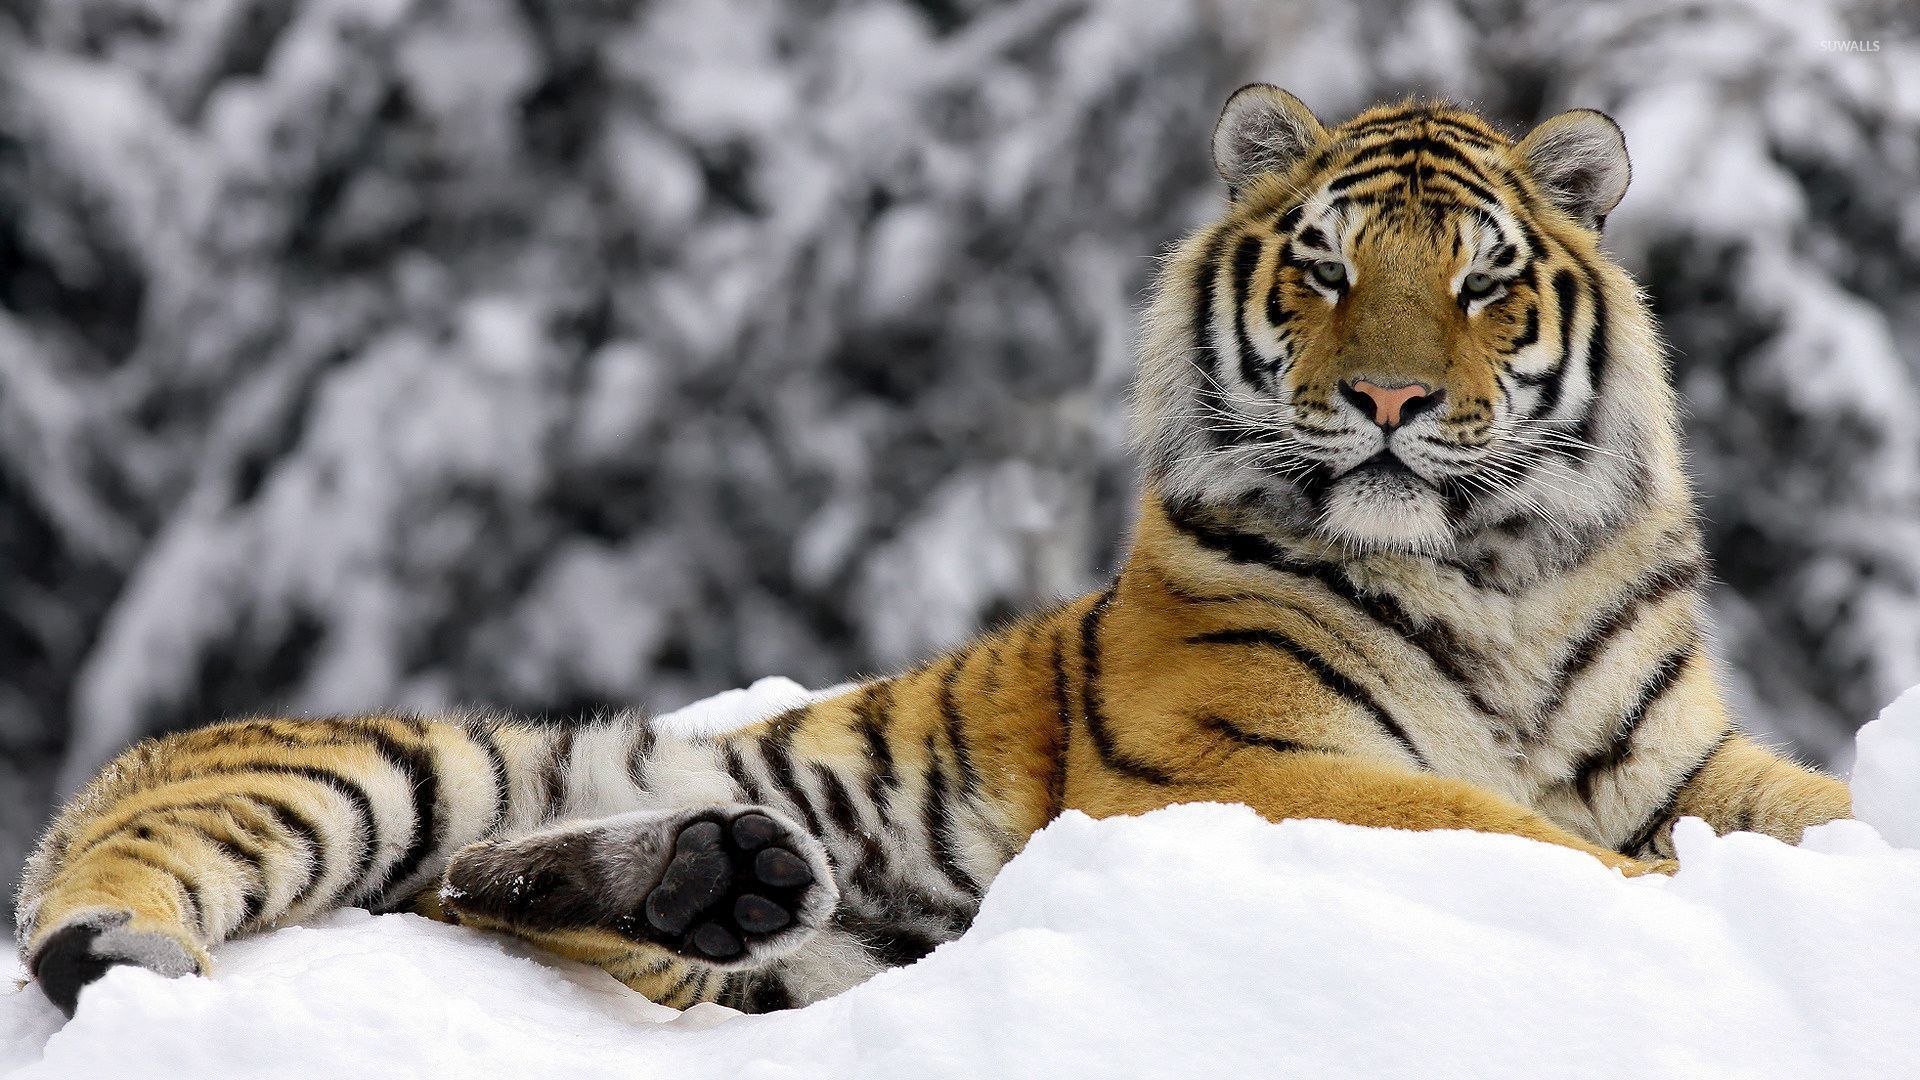 Tiger in the snow wallpaper - Animal wallpapers - #54063